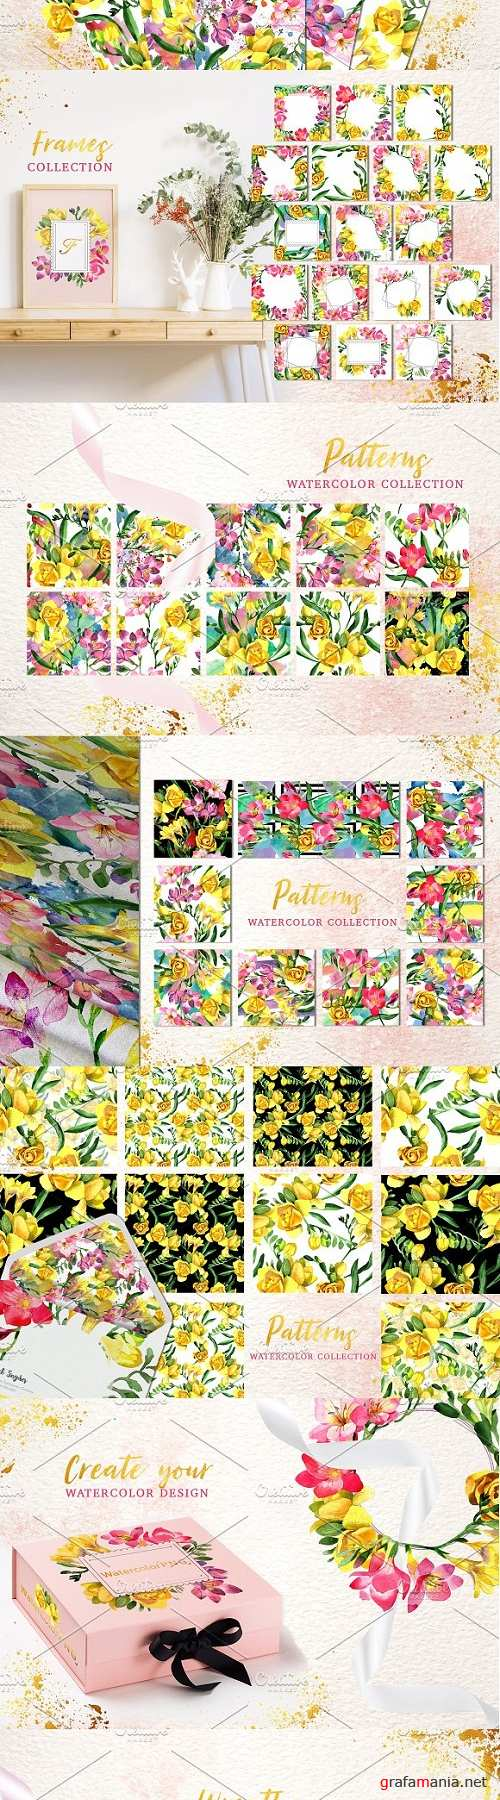 Floral Design collection watercolor - 3494854